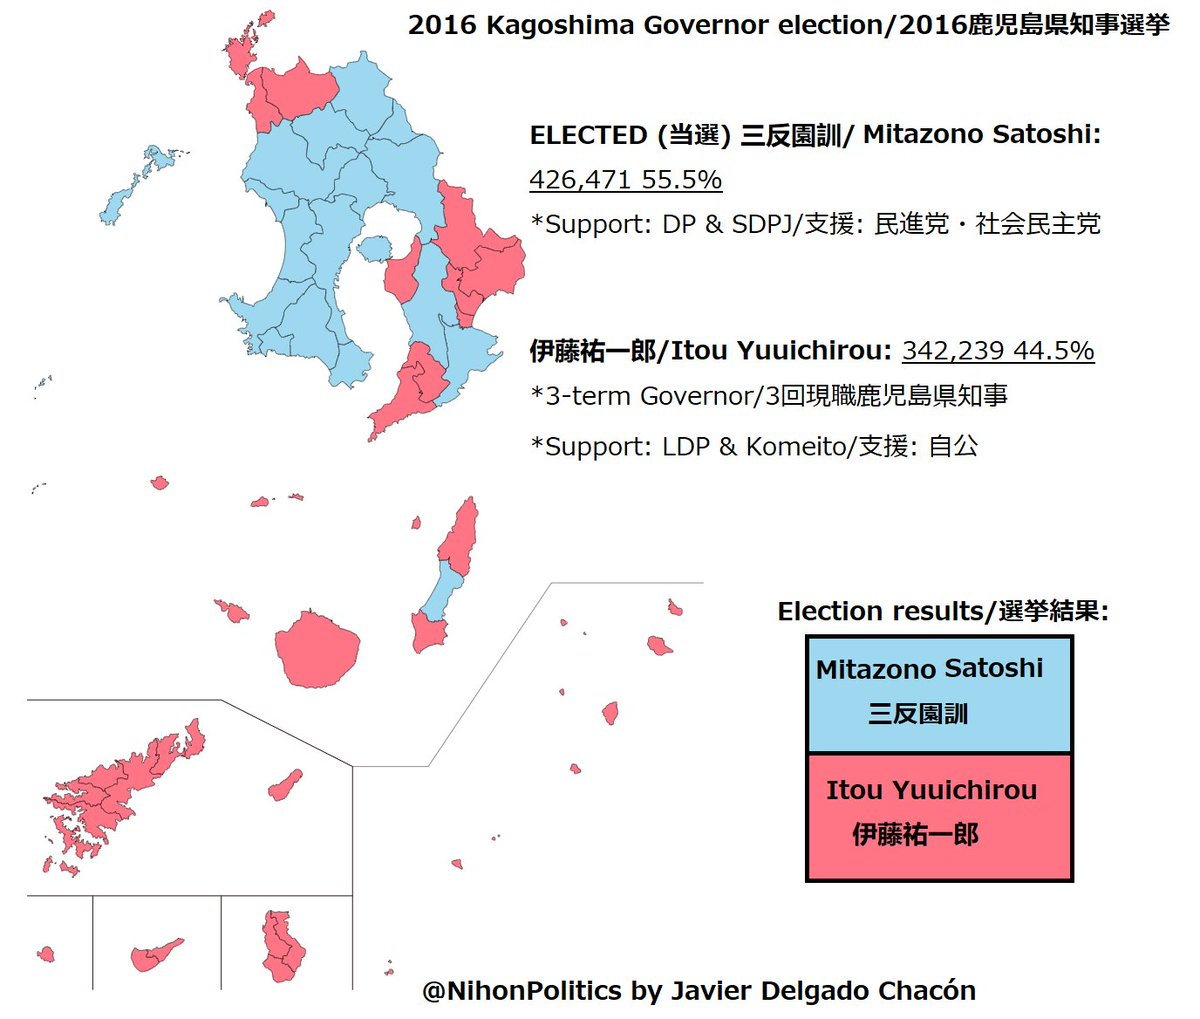 🏖️🎋Kagoshima as always been one of those prefectures I'd like to visit, being in the geographical fringes of the country.  Supported by the old 民進党 & 社民党, Gov. Satoshi defeated the experienced Yuuichirou in 2016. Now they'll face again but things have been turned around. https://t.co/342dhilckB